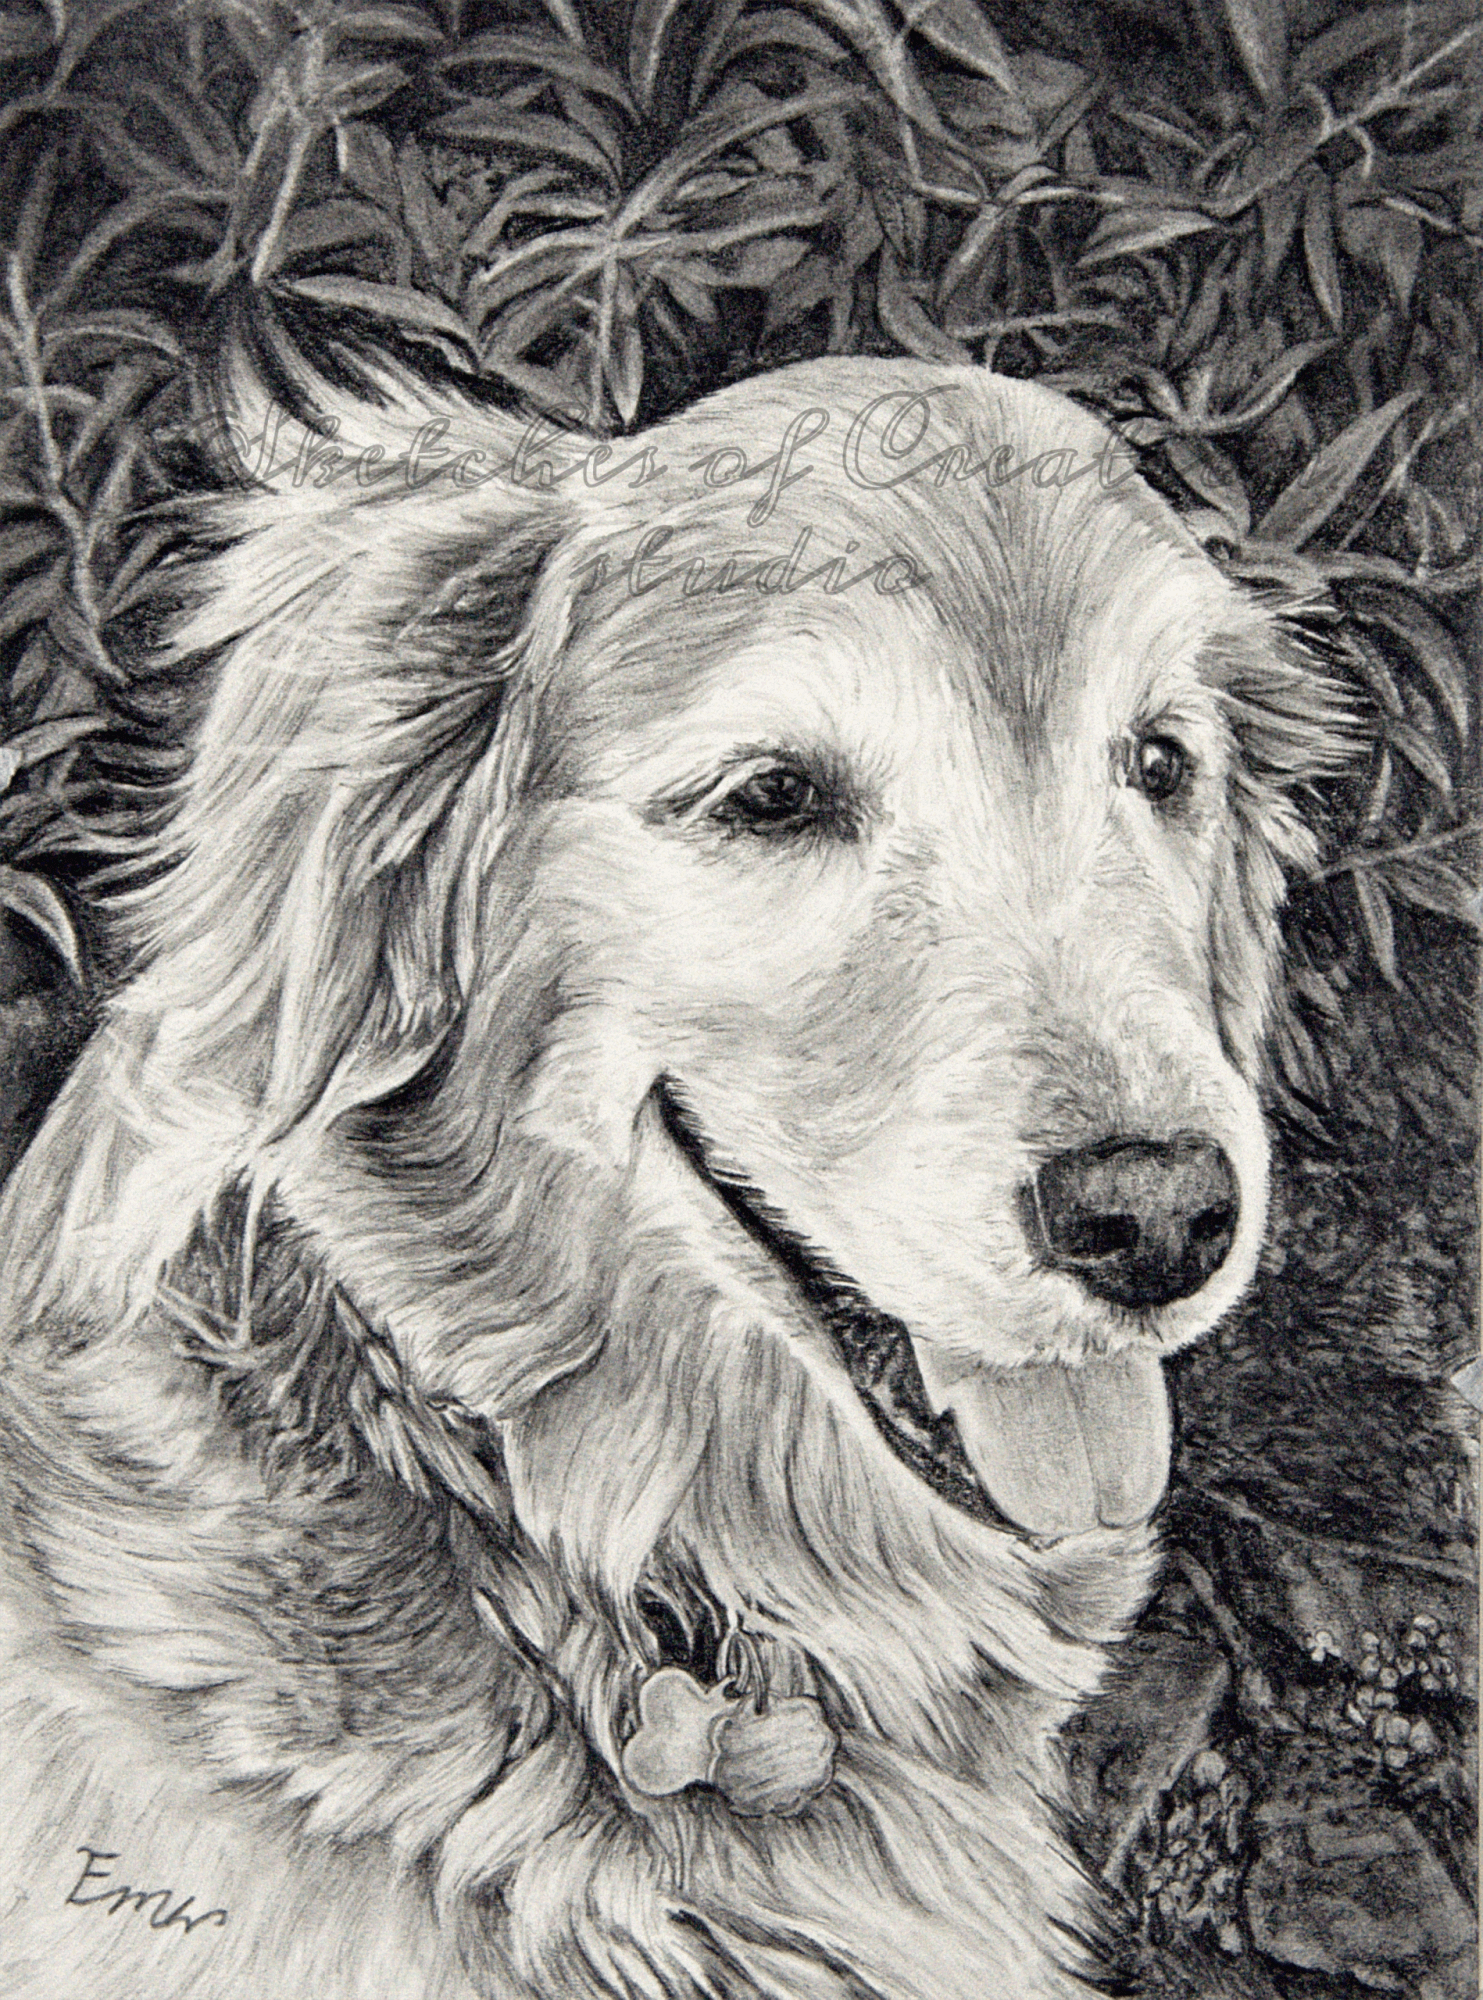 'Maya' a drawing of a golden retriever. 5x7 inches. Completed February 2020